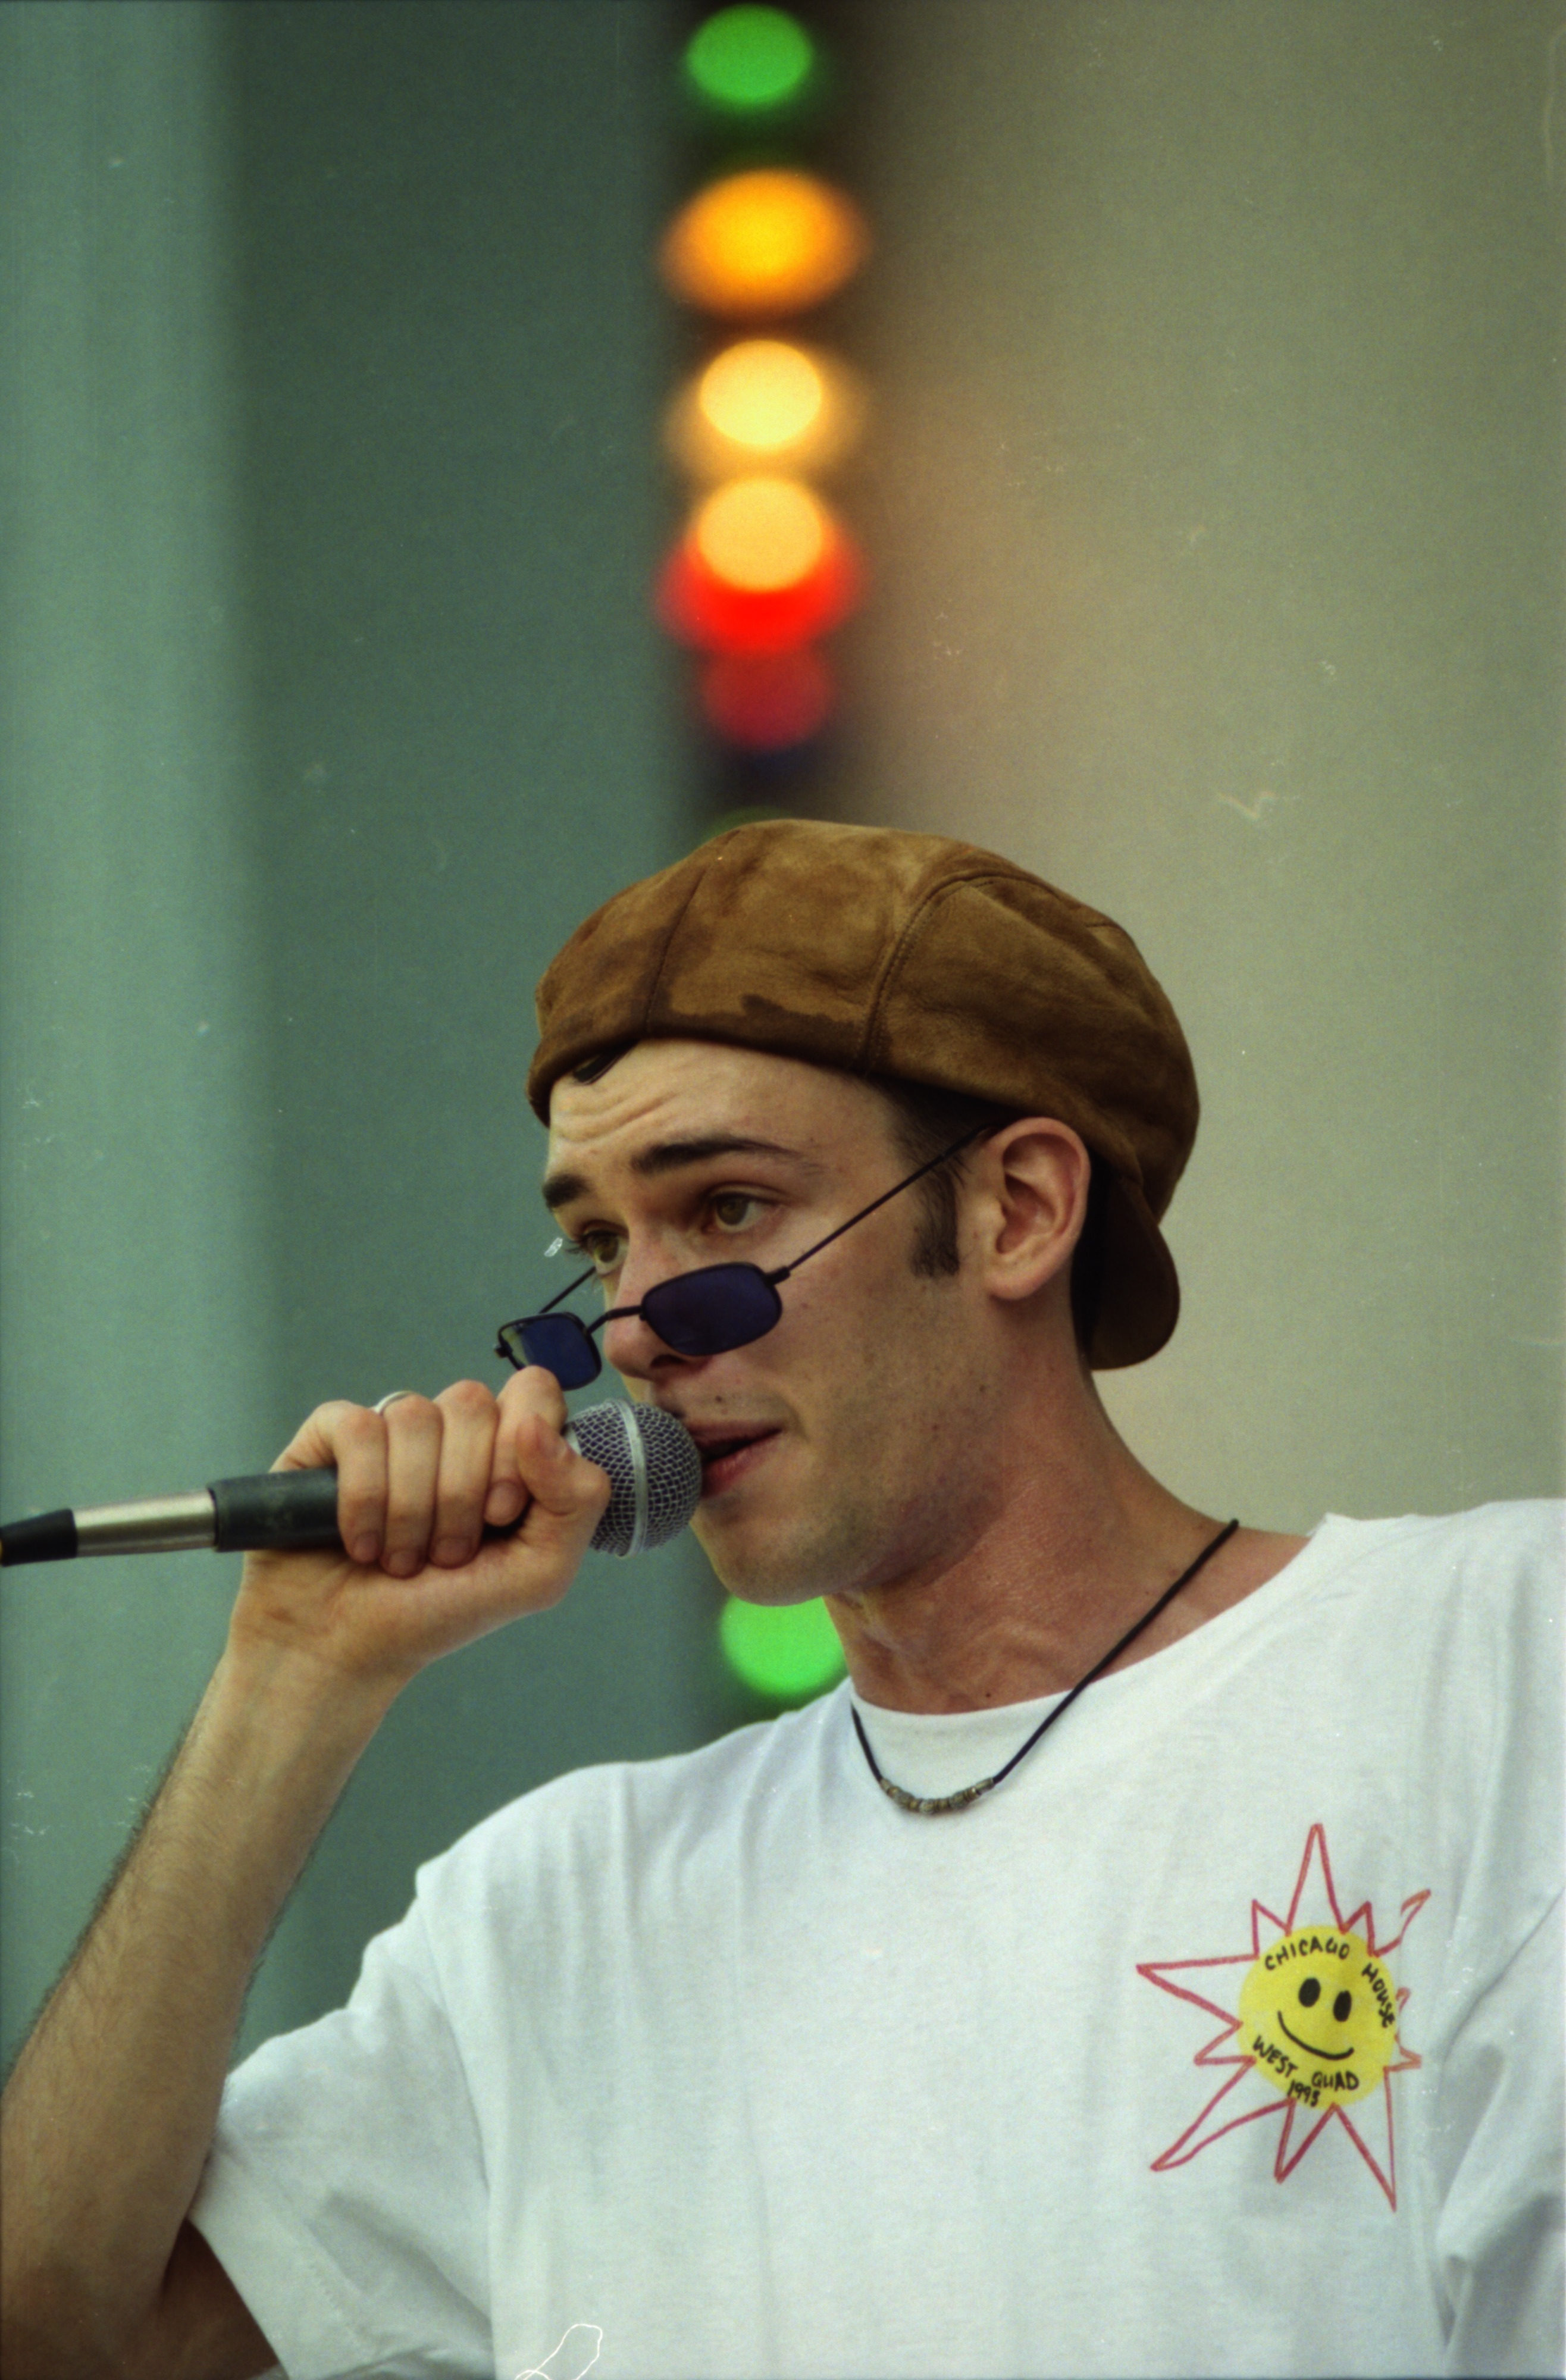 Jon Gore of The Committee, a local hip-hop band, performs at Comstock, West Park, June 13, 1996 image